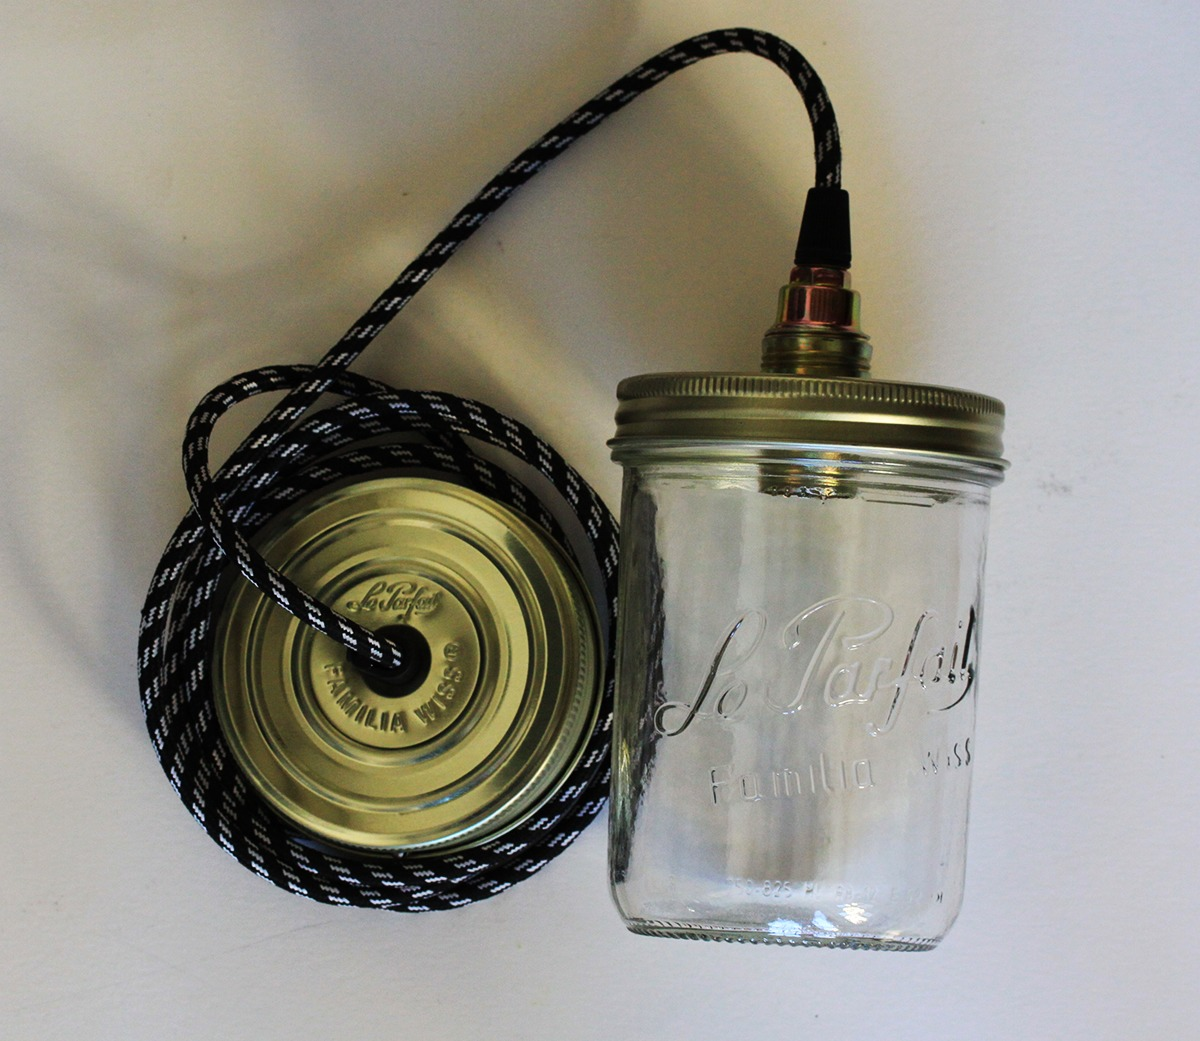 Lighting Gt Pendant Gt Le Parfait Jar Pendant